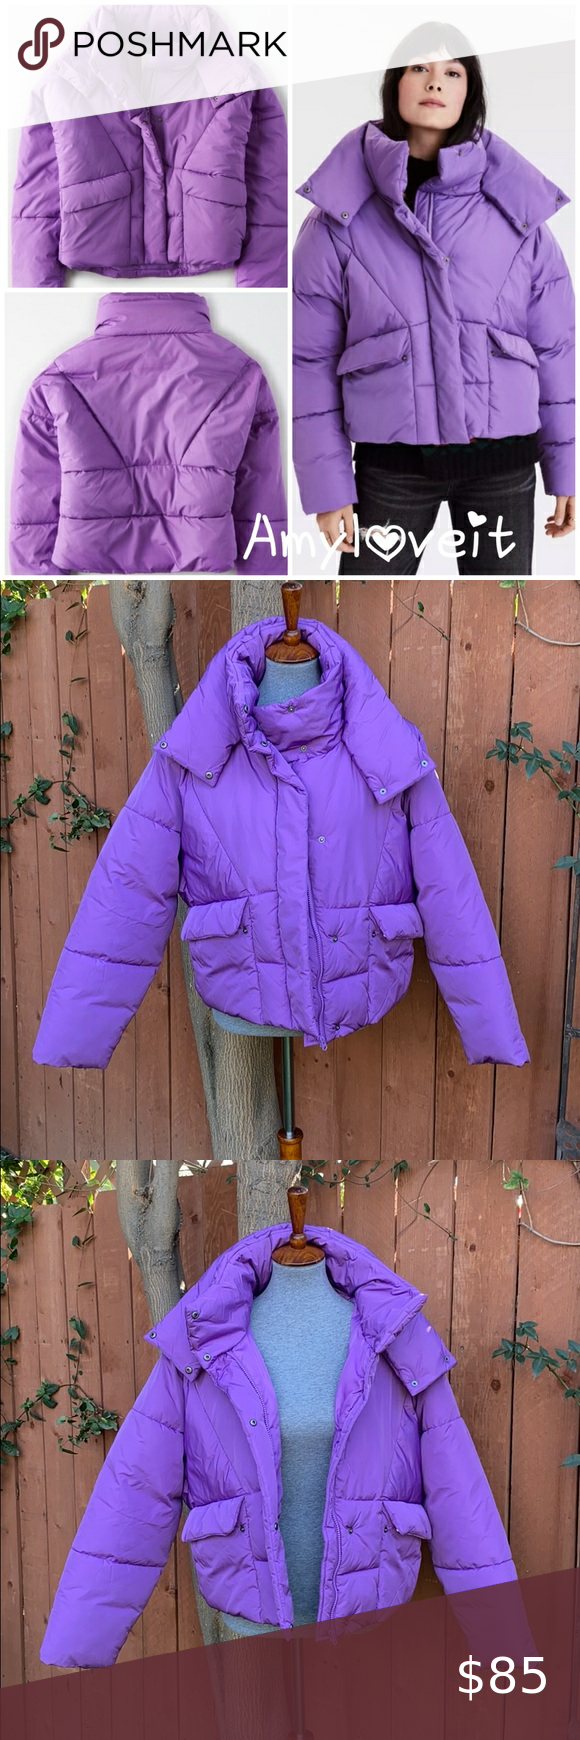 New American Eagle Outfitters Puffer Jacket In 2020 American Eagle Outfitters American Eagle Outfitters Jackets American Eagle [ 1740 x 580 Pixel ]